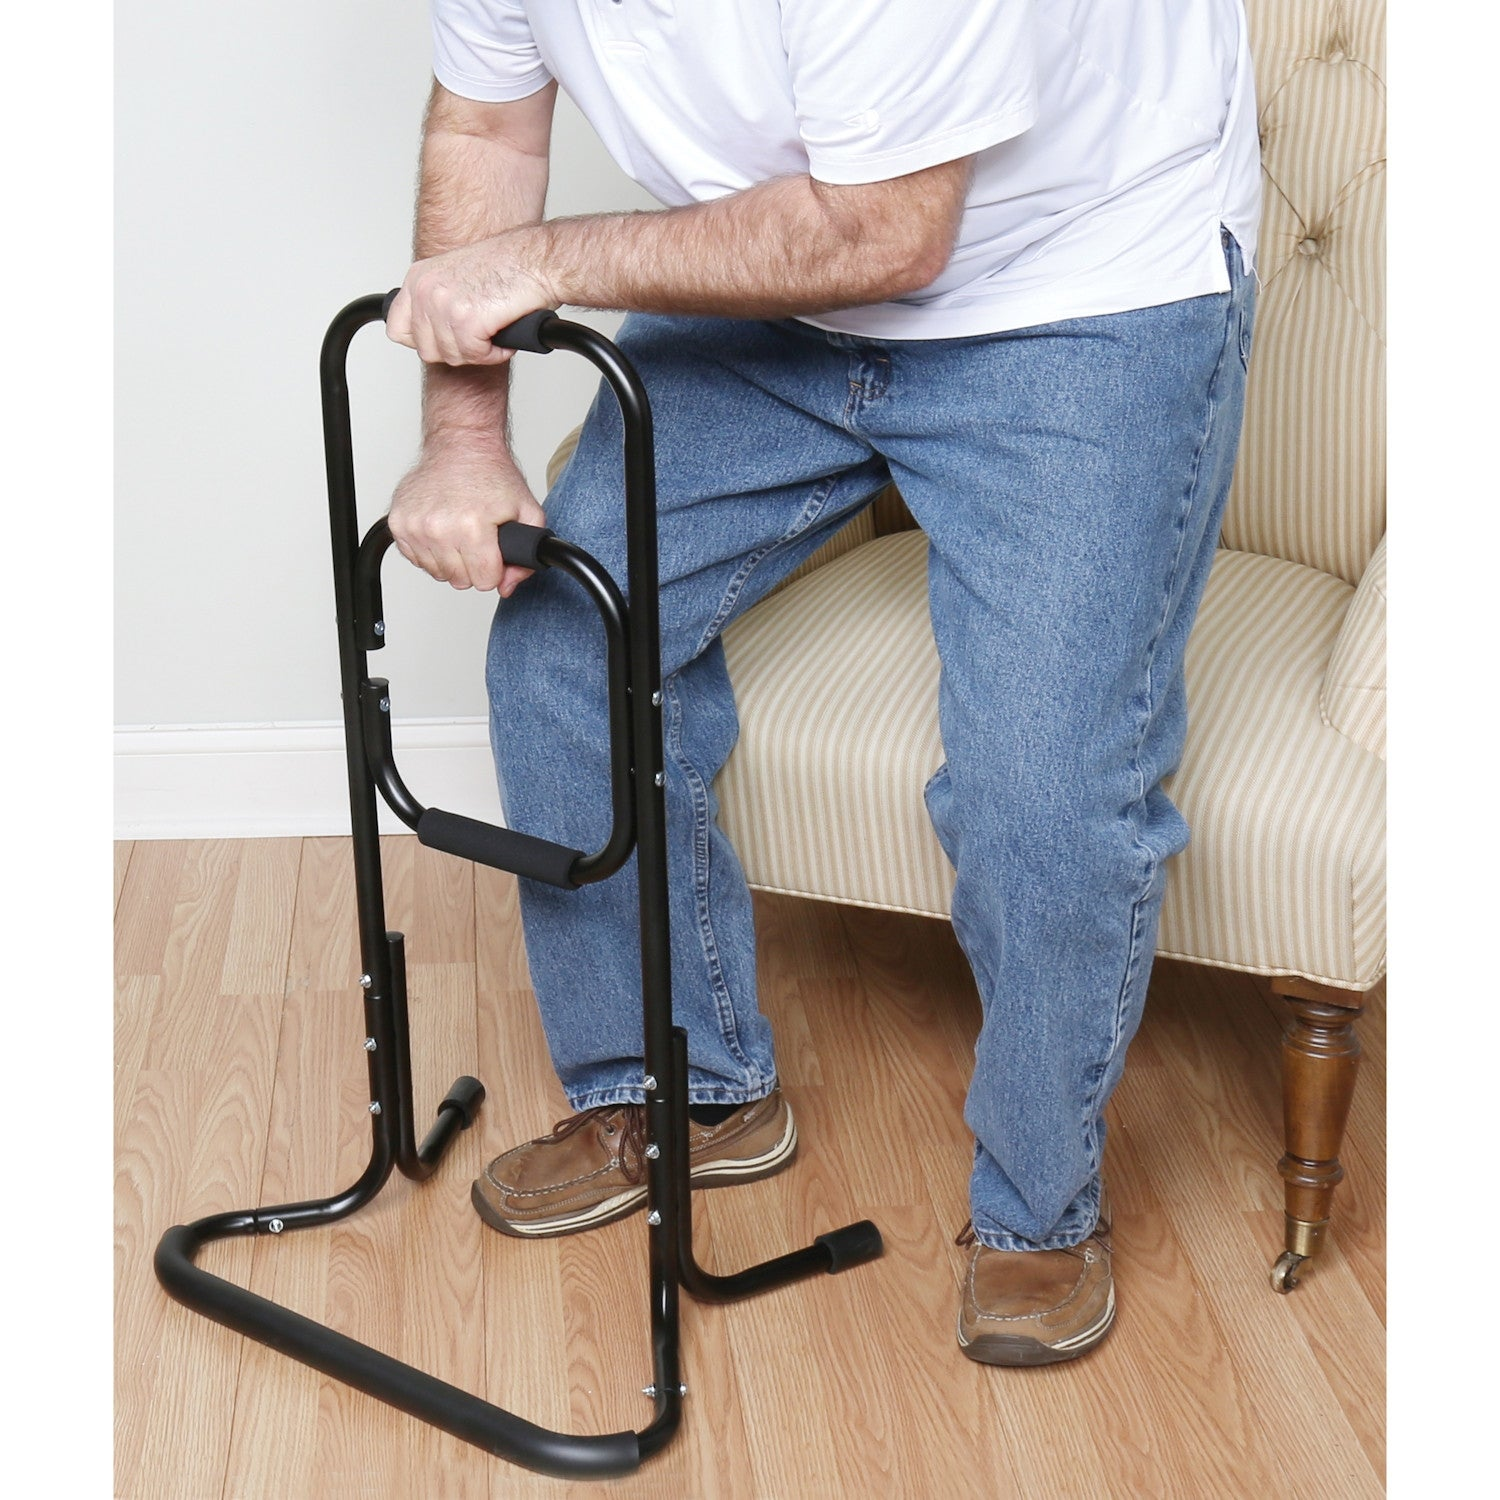 Bandwagon Portable Chair Assist - Helps You Rise from Seated ...